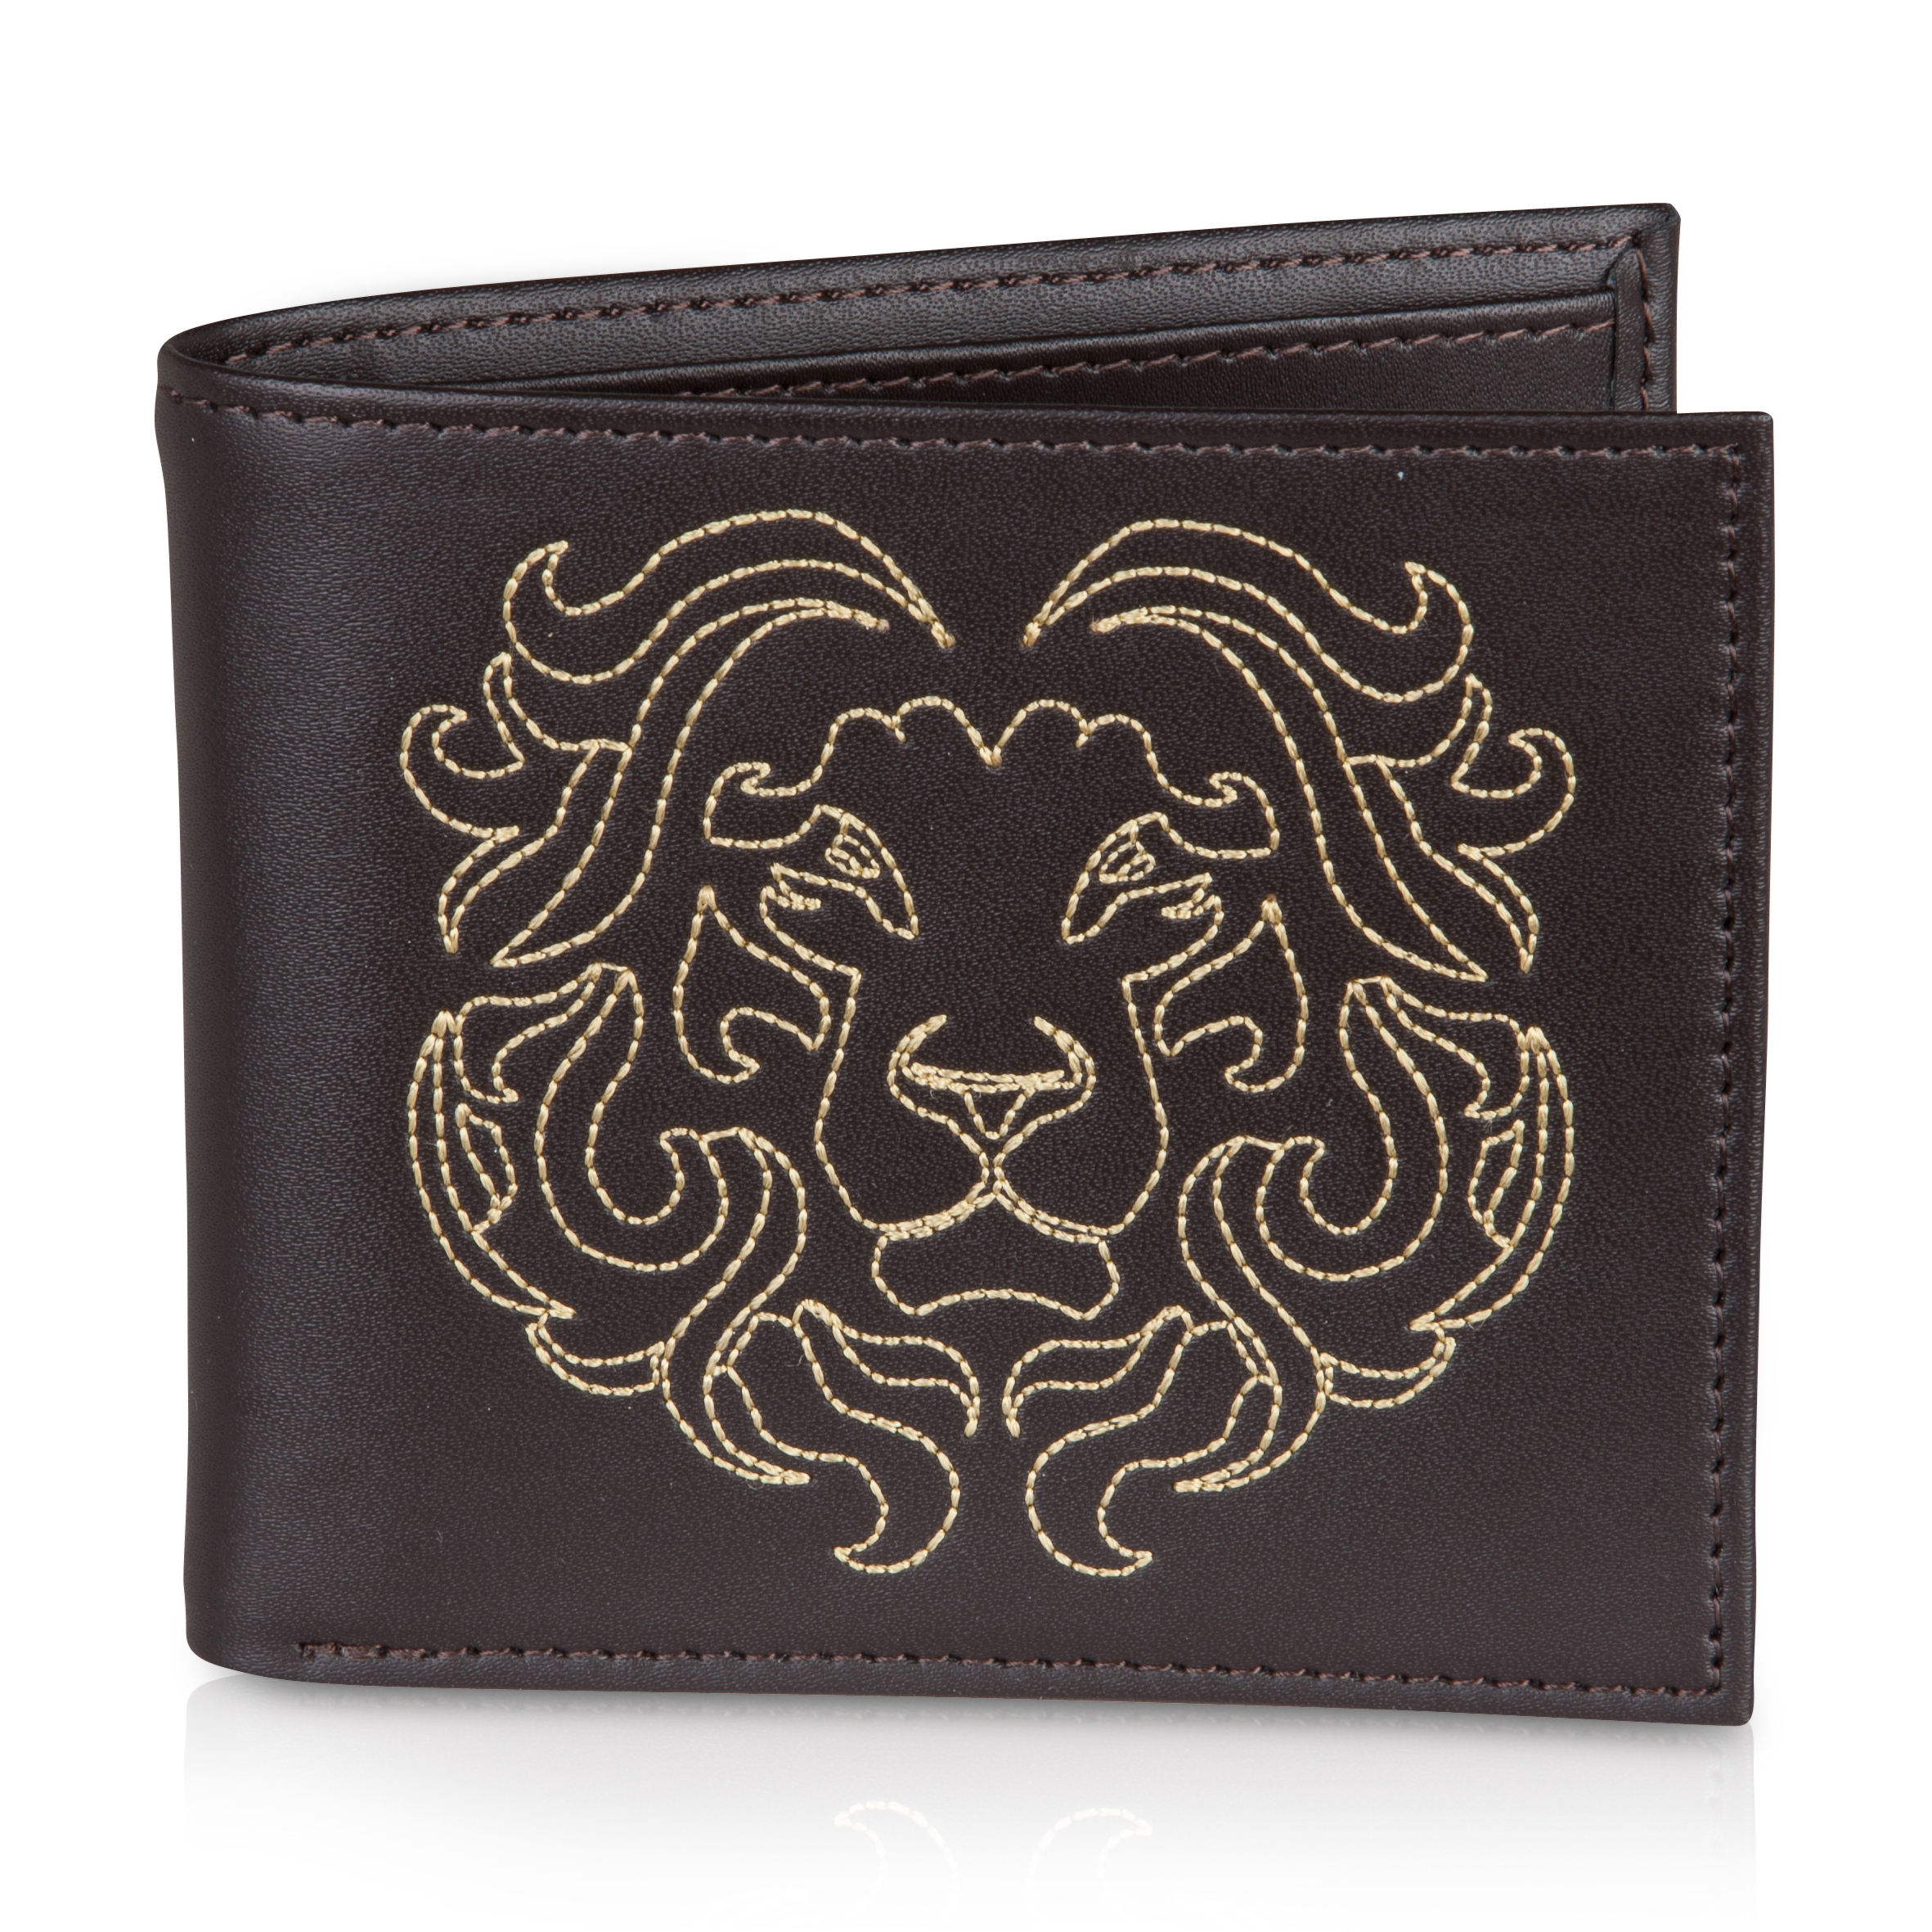 England Rugby Leather Wallet